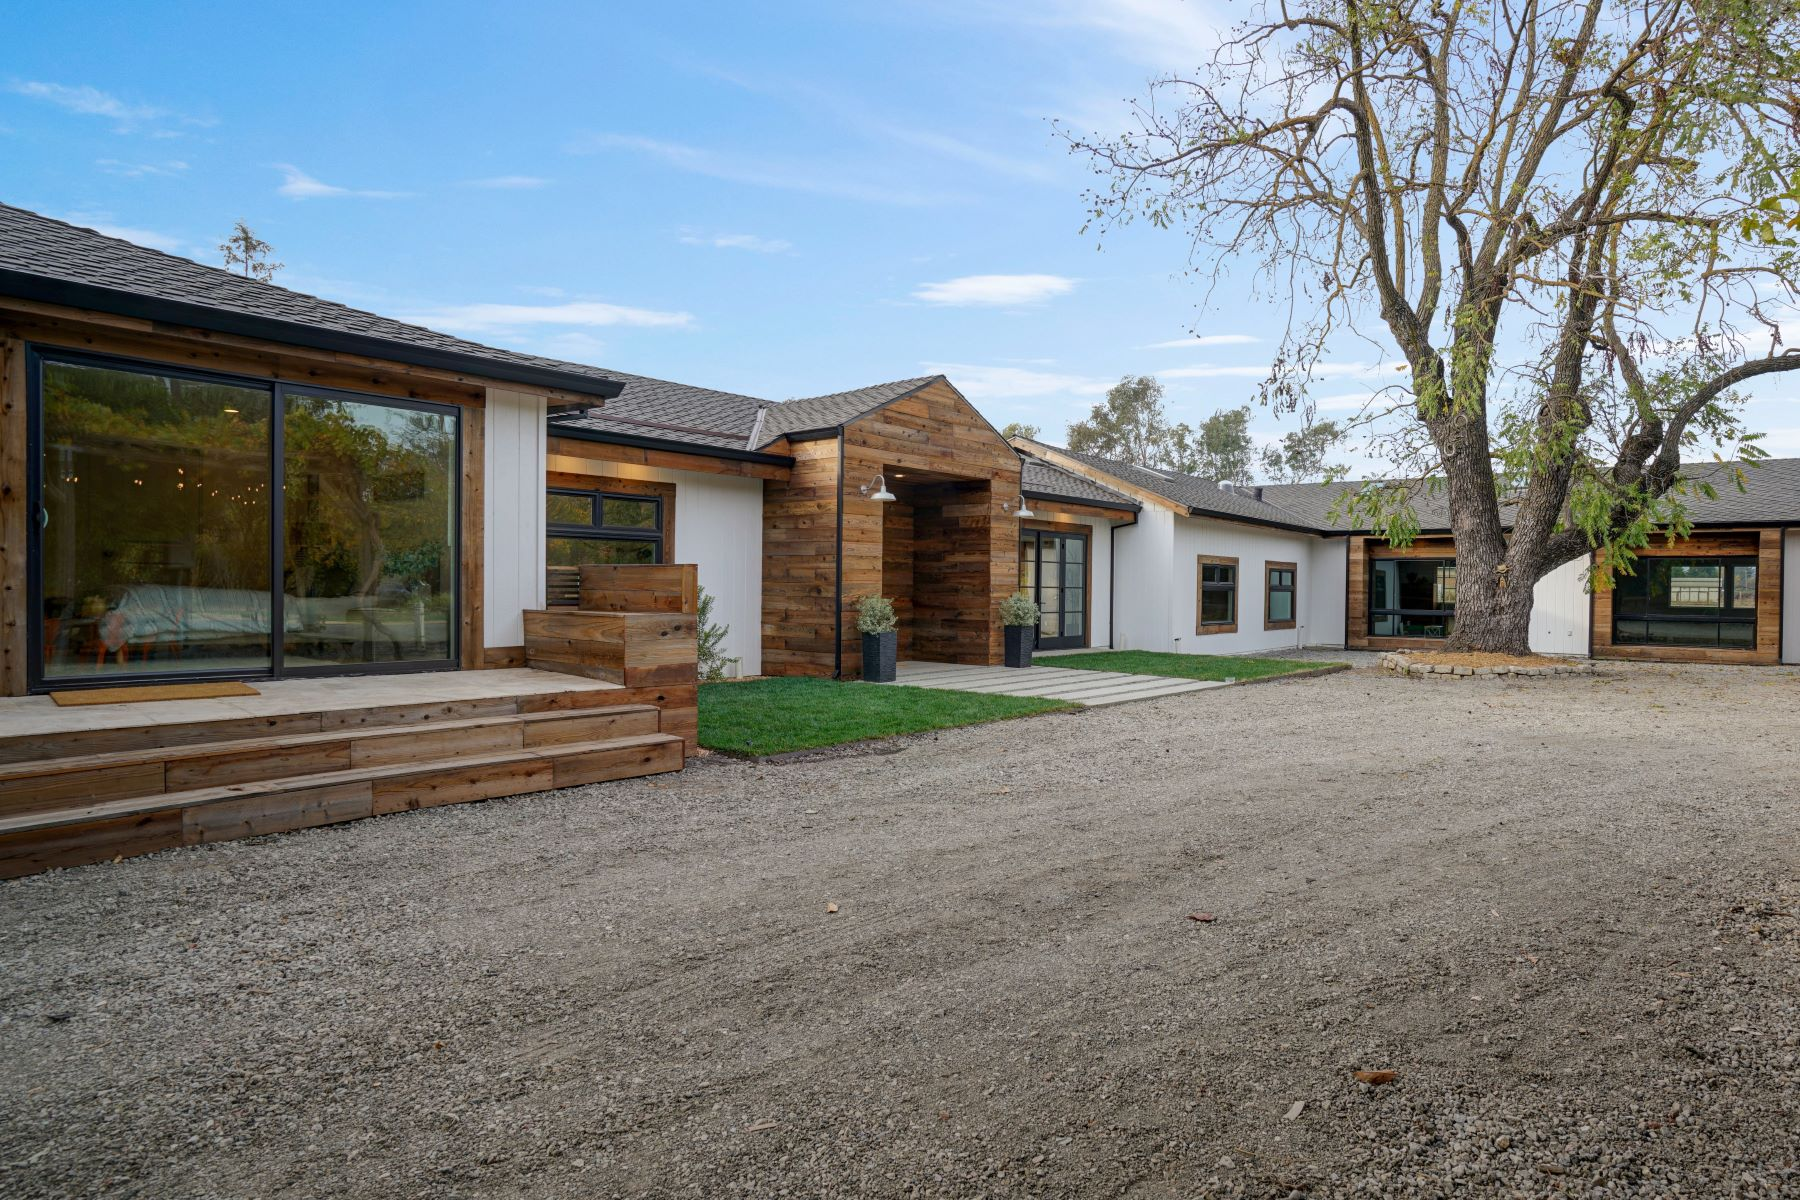 Single Family Homes for Active at Sophisticated Farmhouse and Vintage Barn 2530 Acacia Ave Sonoma, California 95476 United States